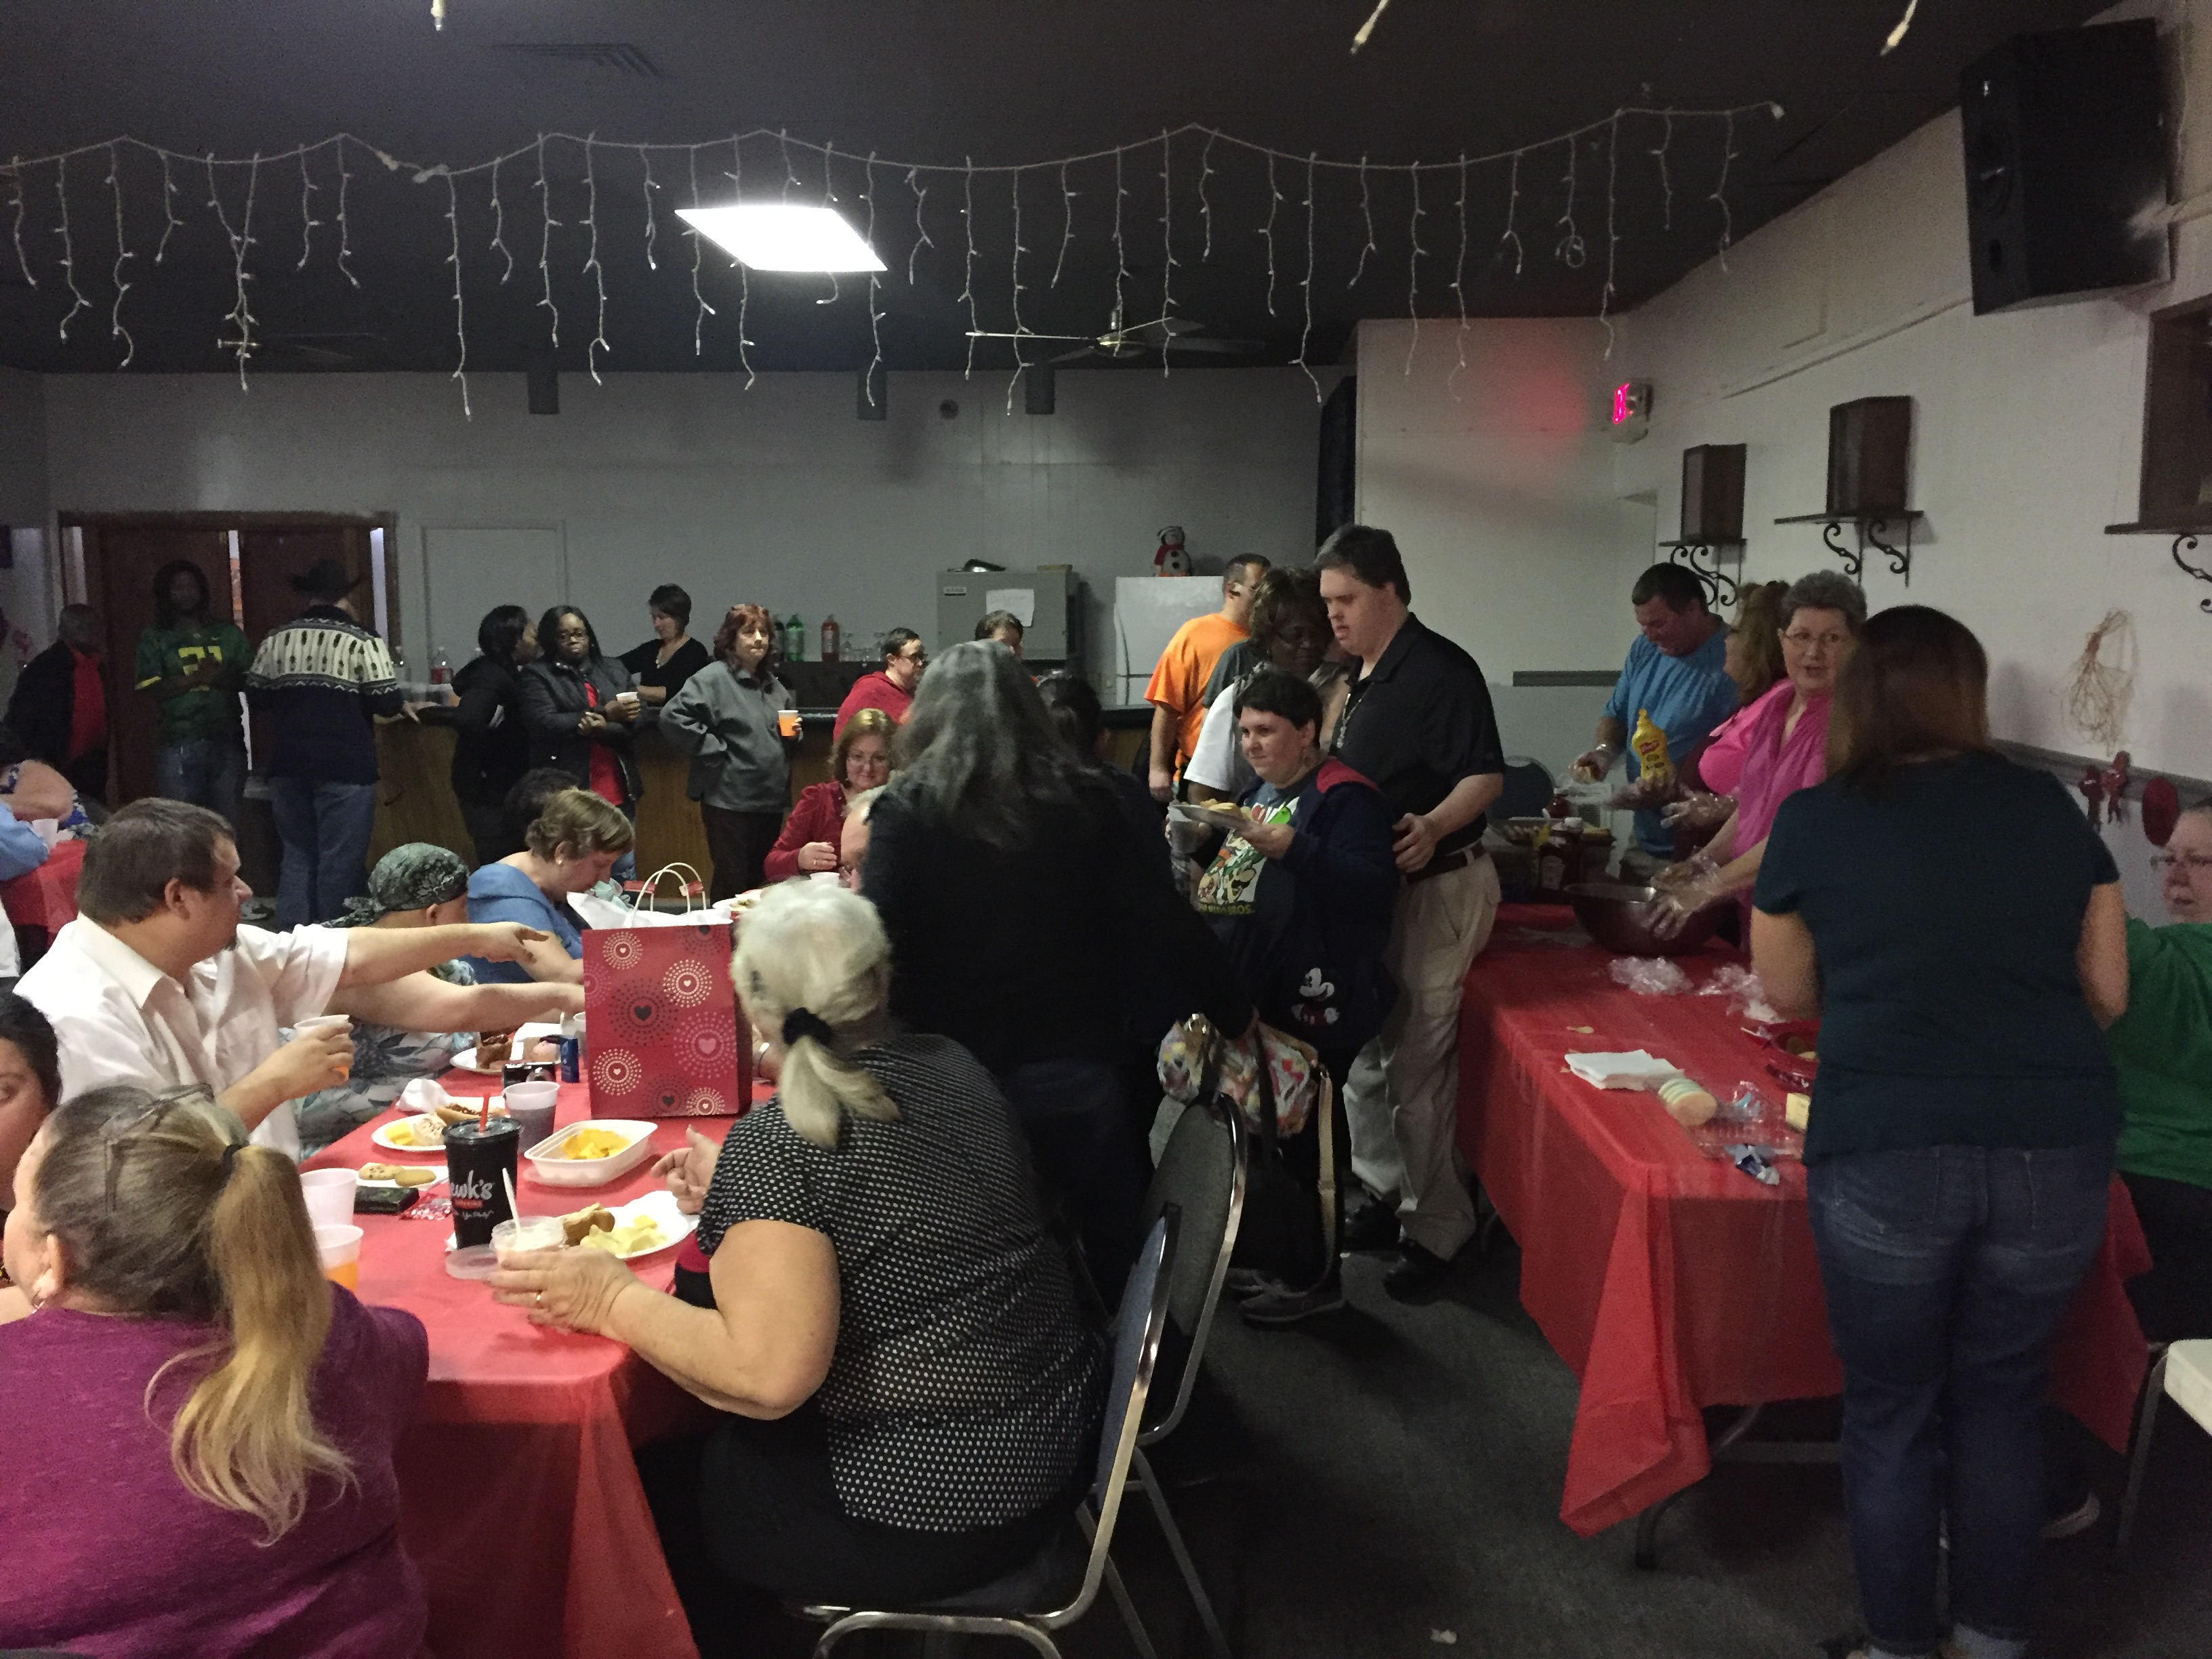 Valentine's Dance at the Moose Lodge